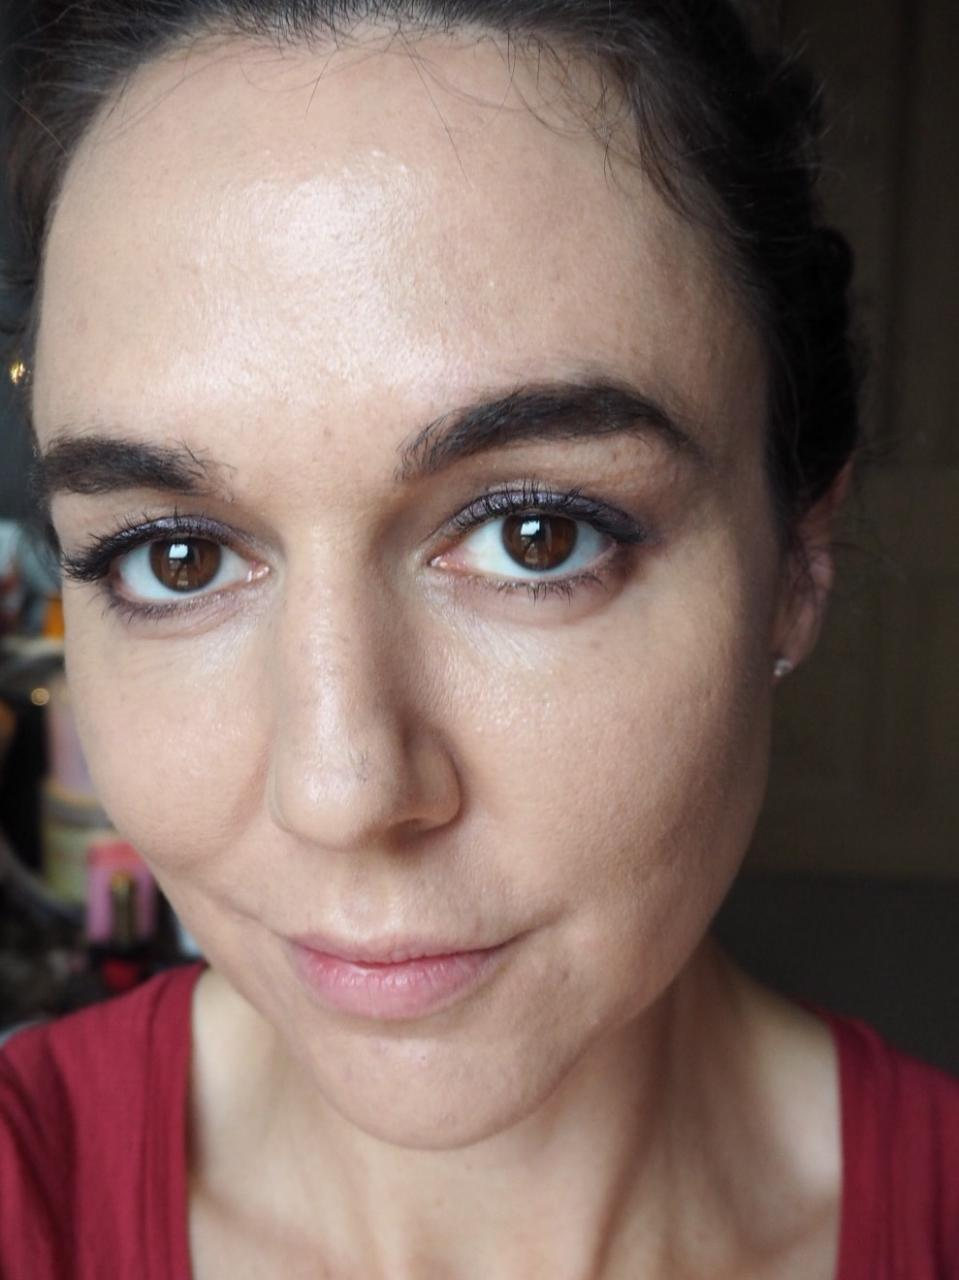 Niapattenlooks Matte Foundation Bare Face No7 Beautifully Blog Review Worn